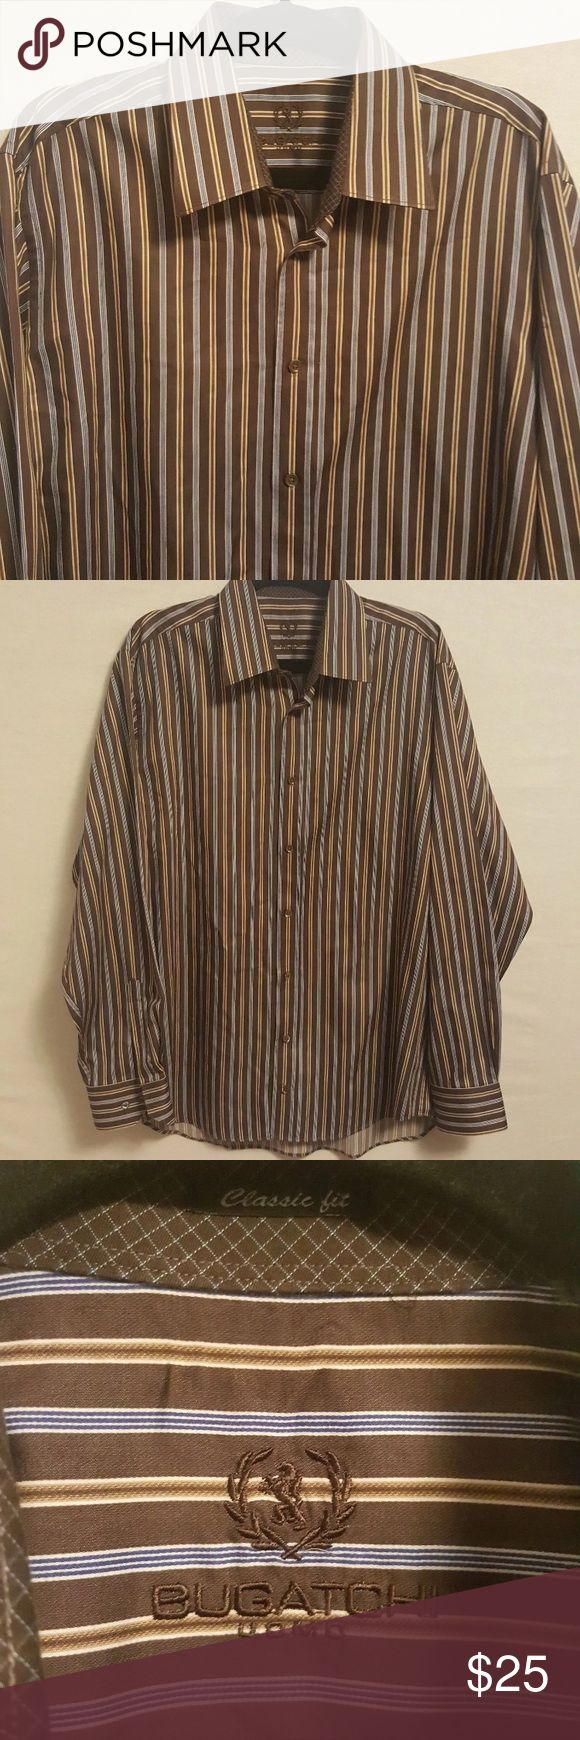 Bugatchi Uomo Striped Brown Dress Shirt Bugatchi Uomo Striped Brown Dress Shirt Size XL, color is brown, gold and blue. Gently pre-owned, in great condition.  Measurements (approximate) Length: 31 inches Underarm to underarm (laying flat): 25.5 inches Sleeve: 26.5 inches Shoulder to Shoulder: 21 inches Bugatchi Shirts Dress Shirts